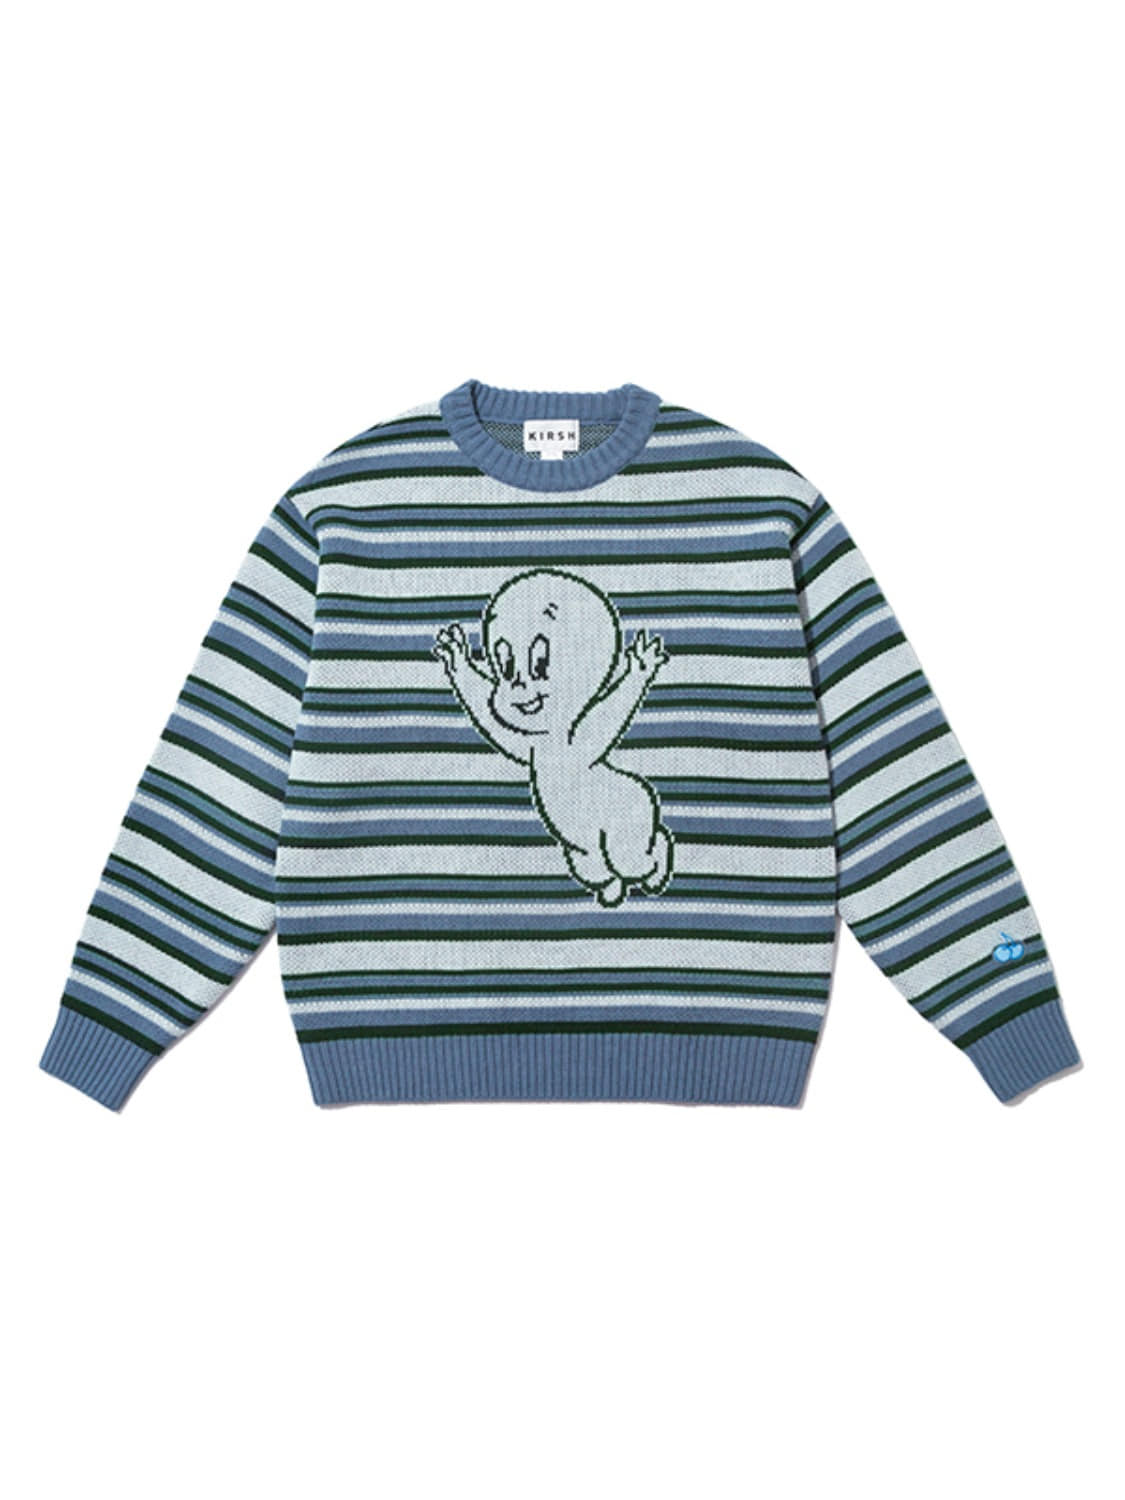 CASPER STRIPE KNIT JA [BLUE]